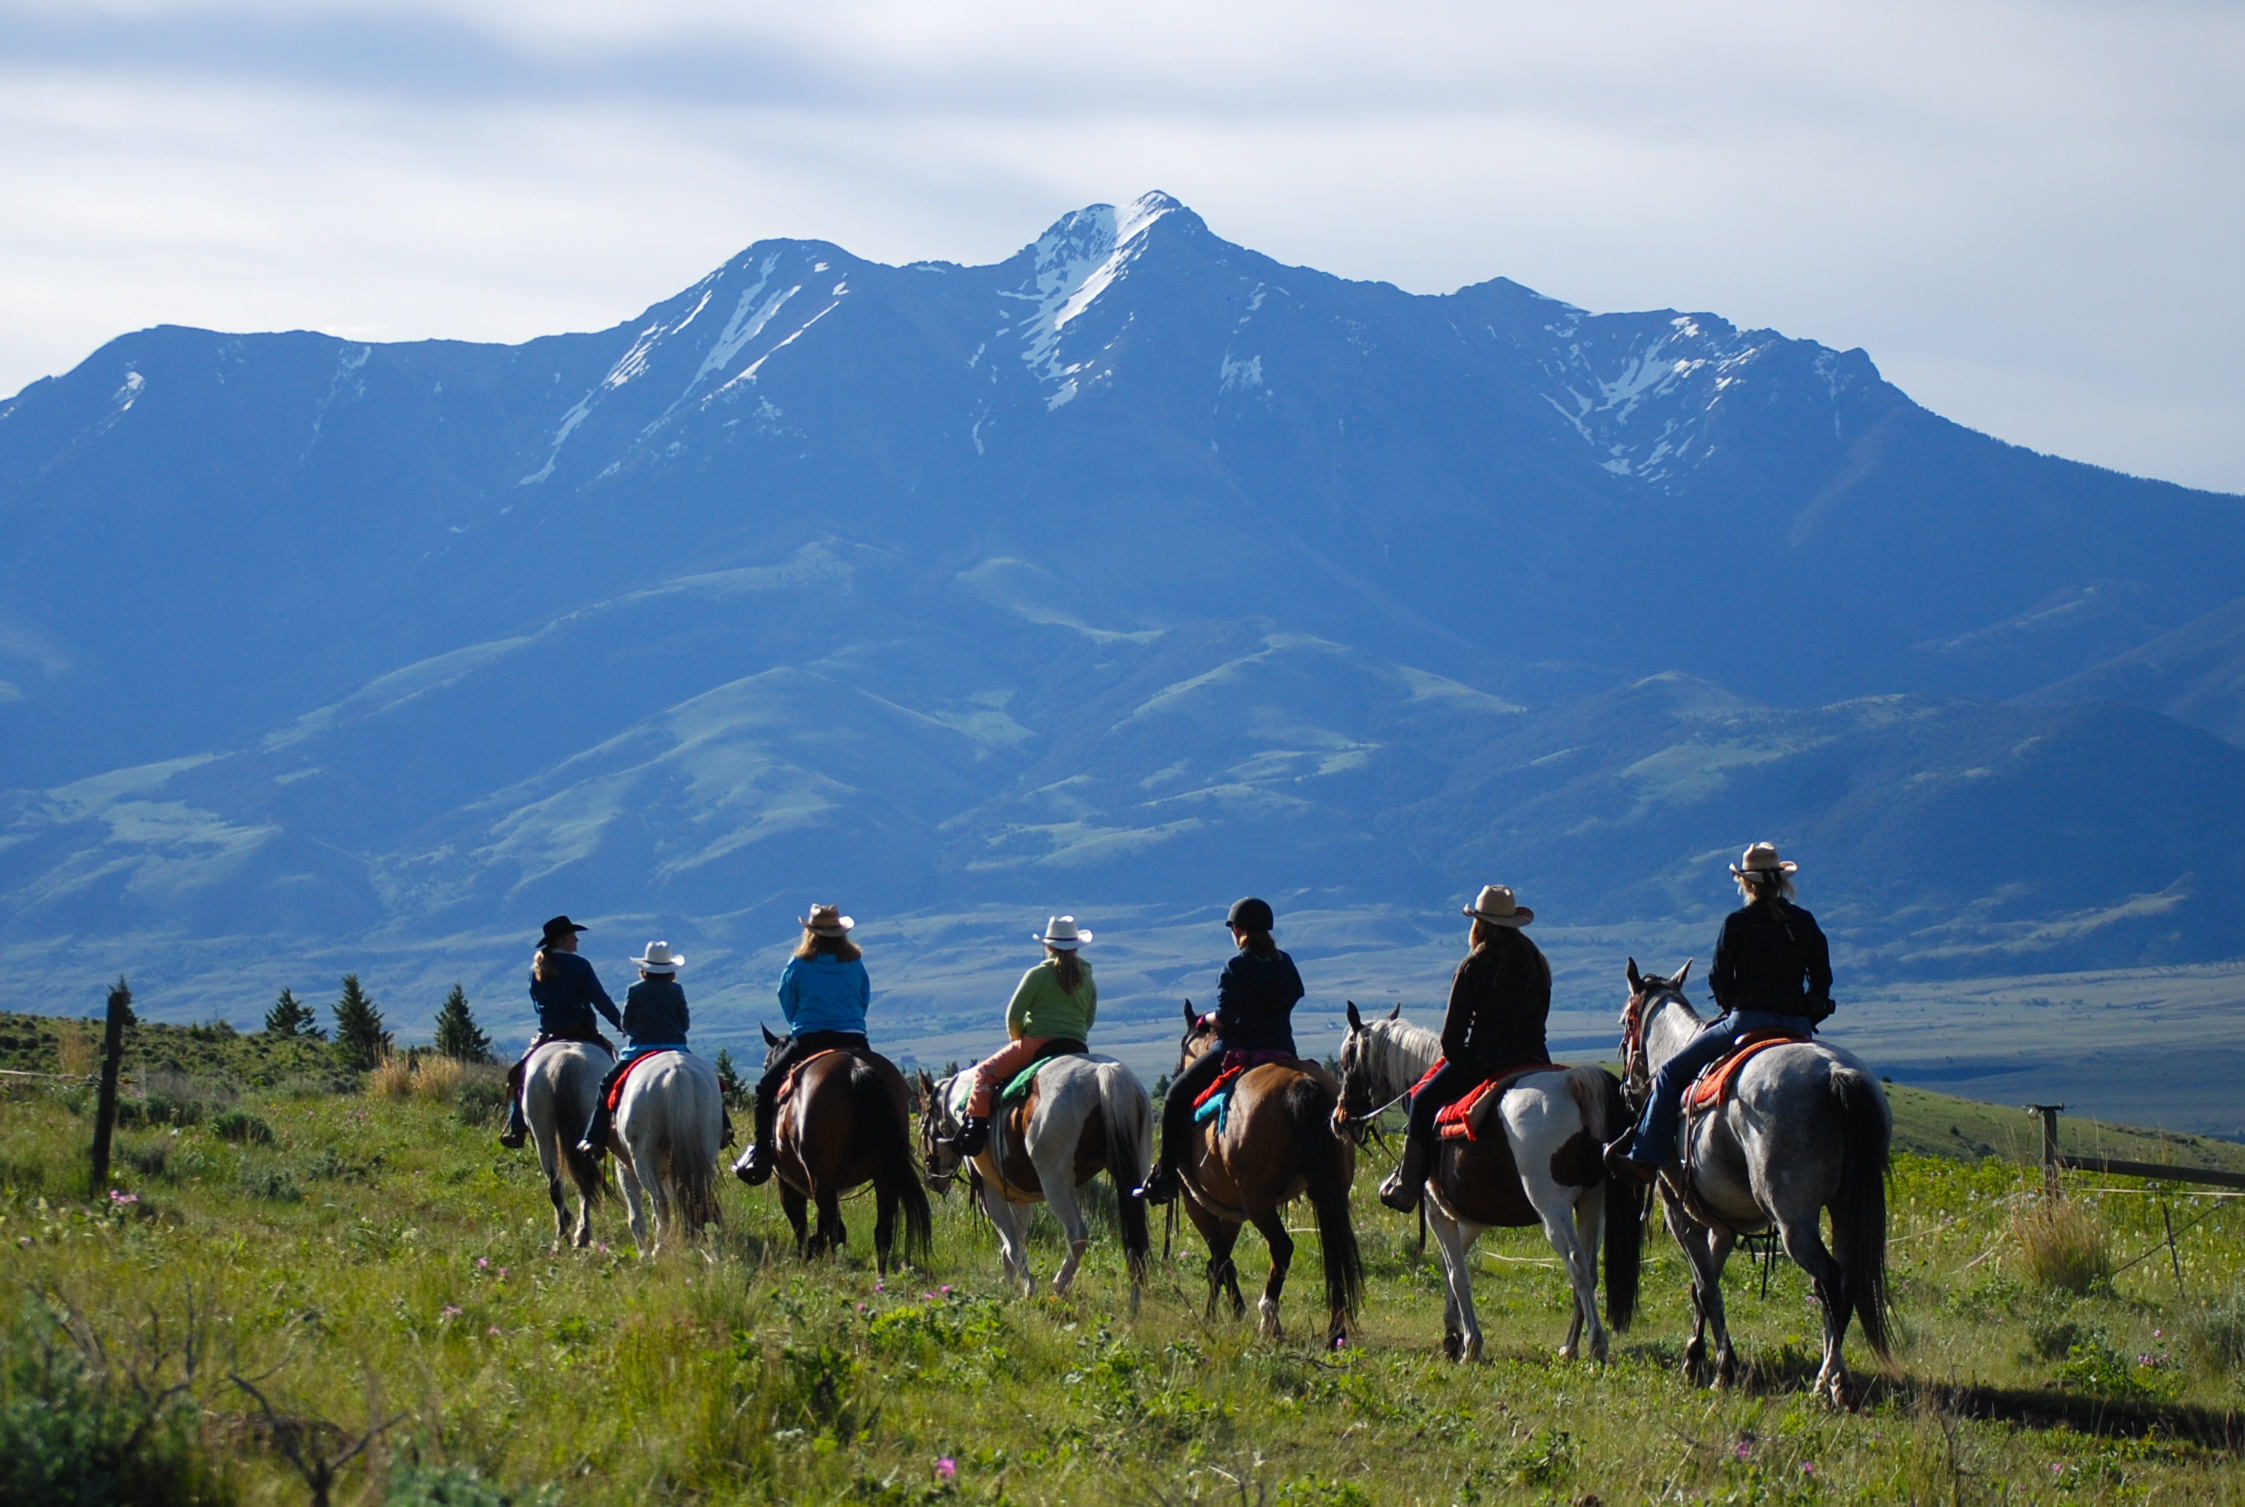 Let's put those activities into motion! Let's go riding under Montana's Big Sky